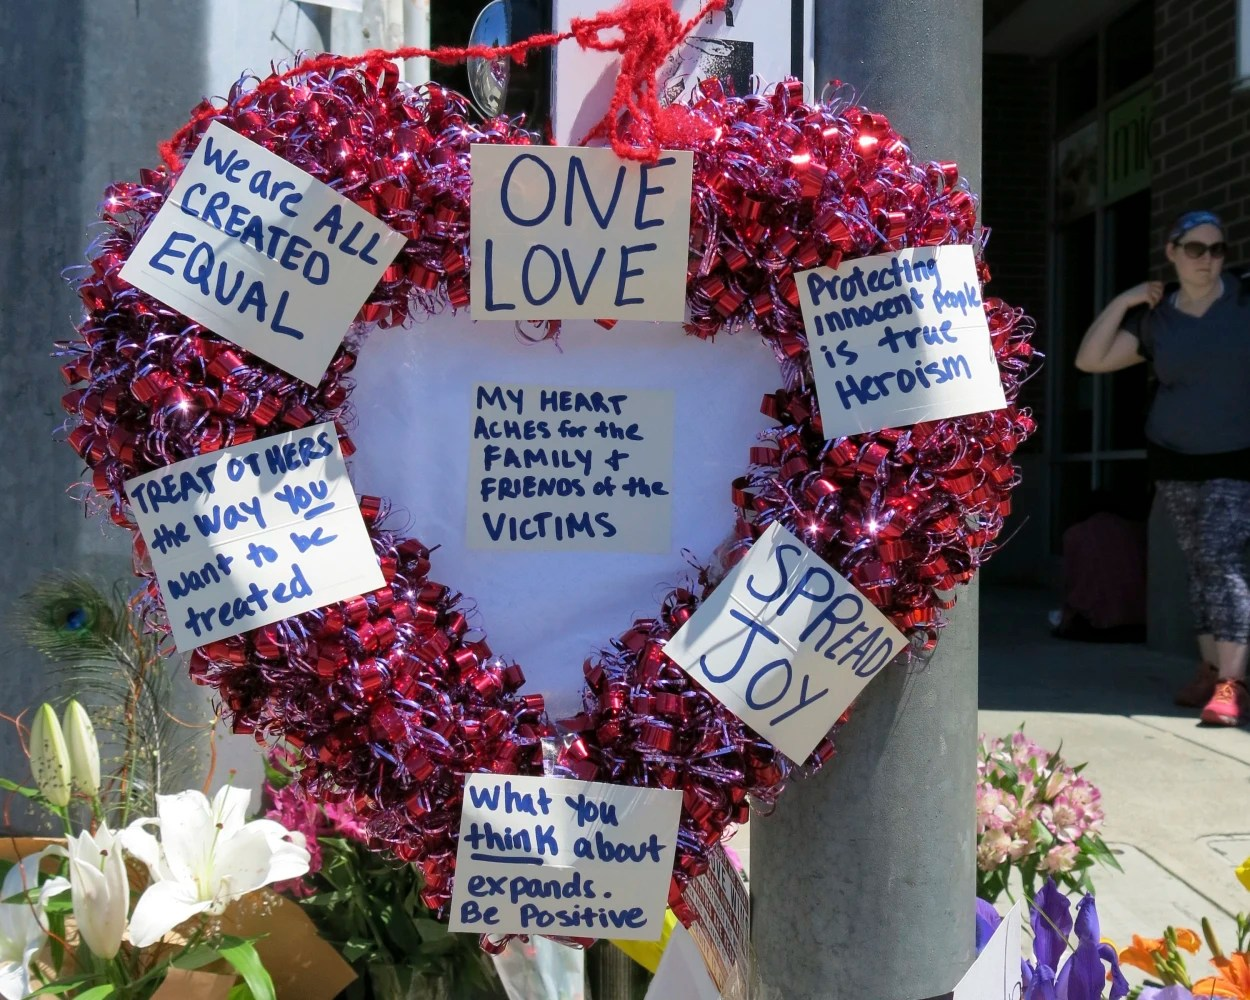 Portland stabbing suspect calls his act 'patriotism' in court hearing